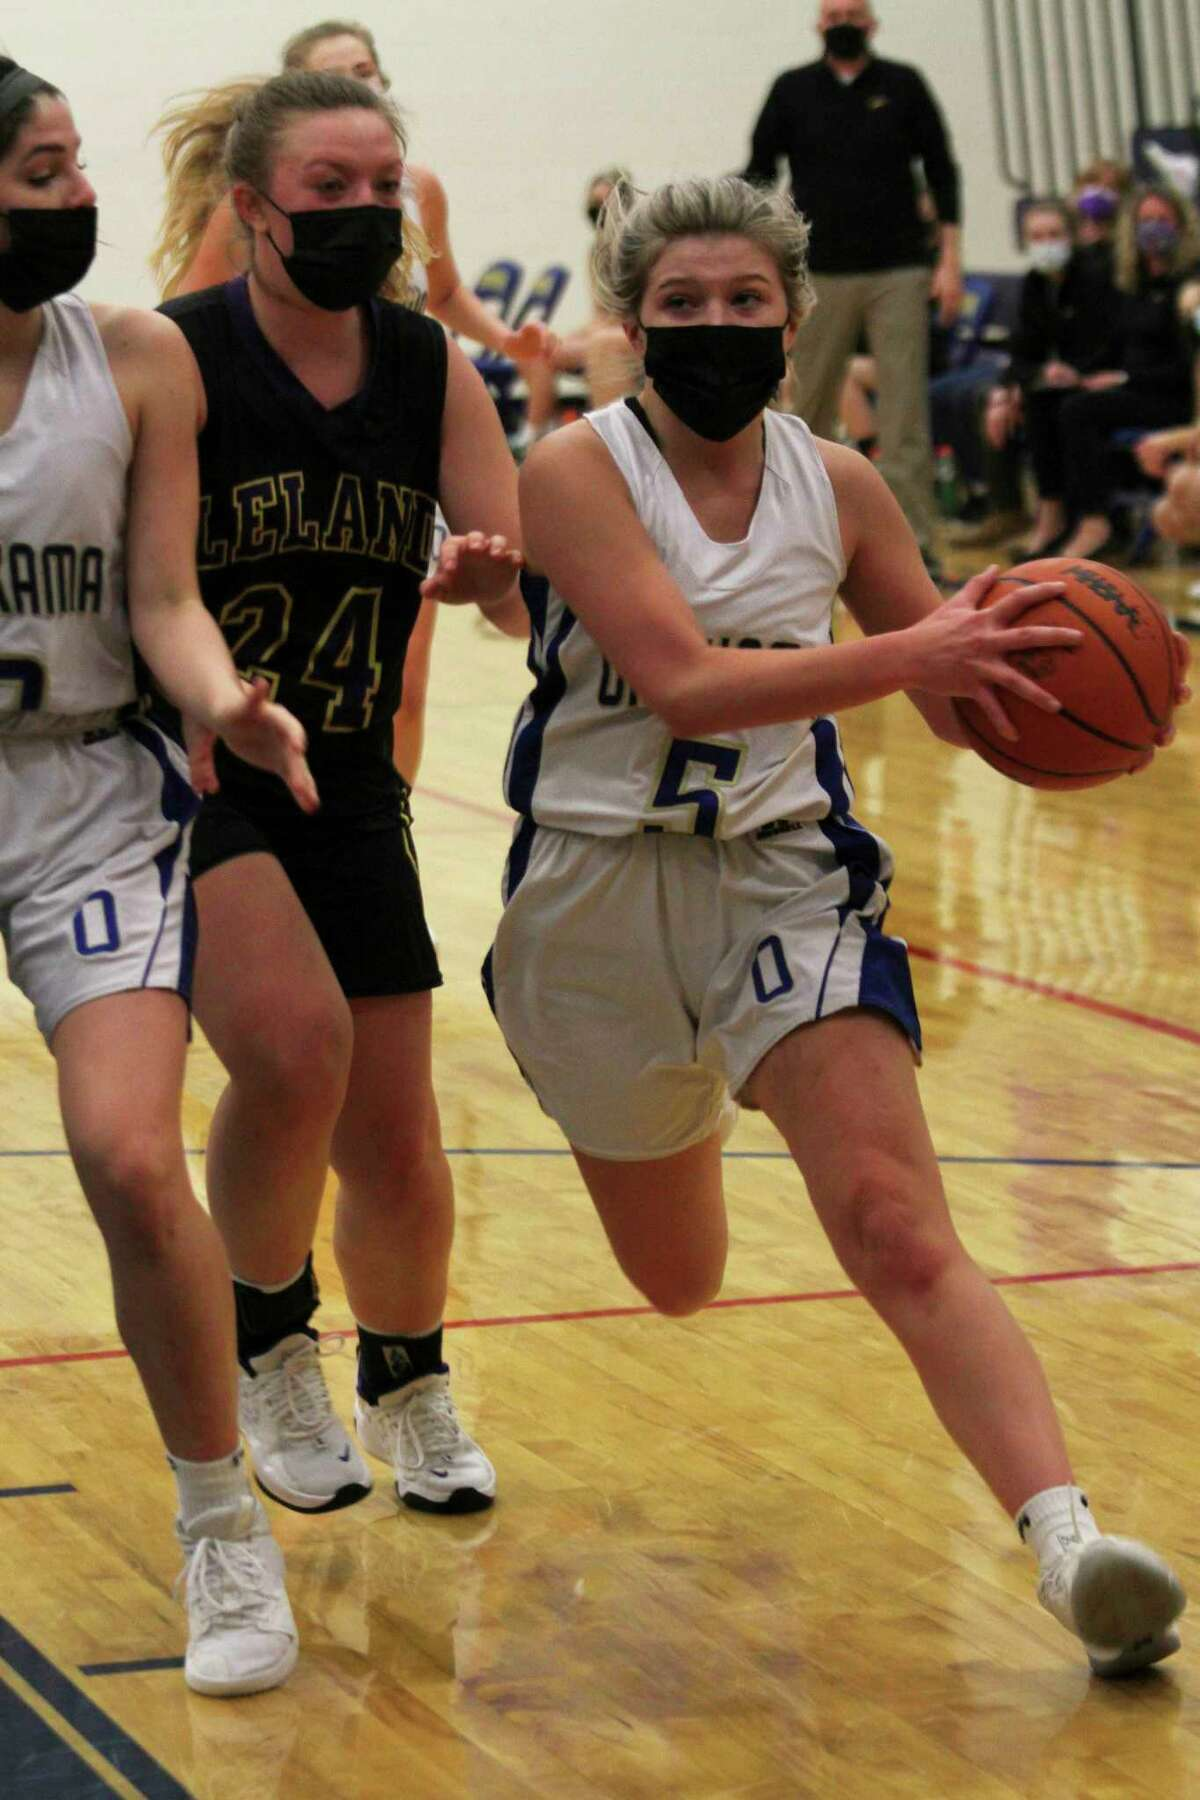 Onekama's boys and girls basketball teams each lost to Kingsley on Thursday night. (News Advocate file photo)